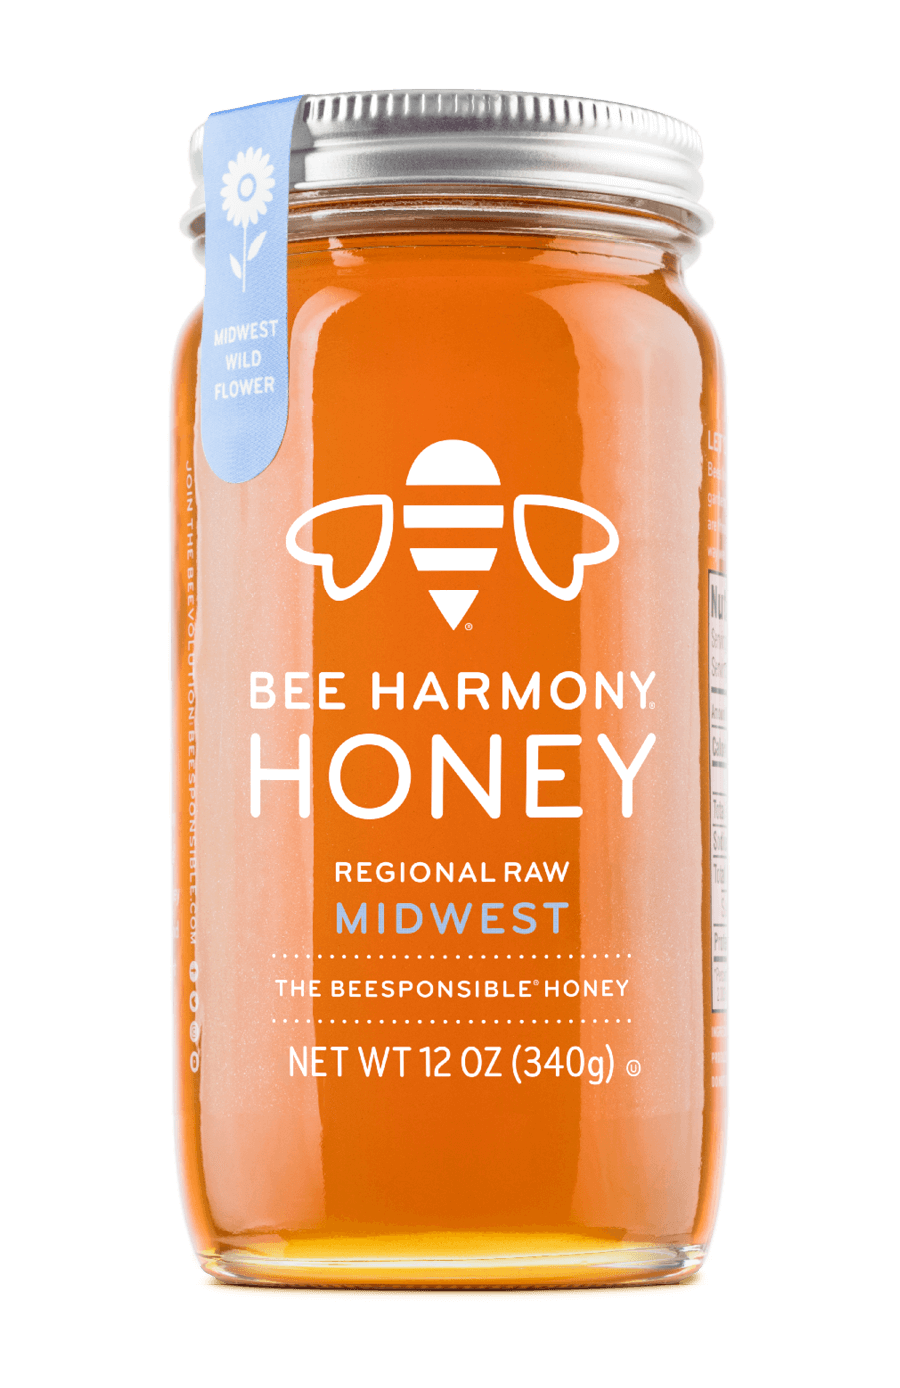 Midwest Regional Raw Honey